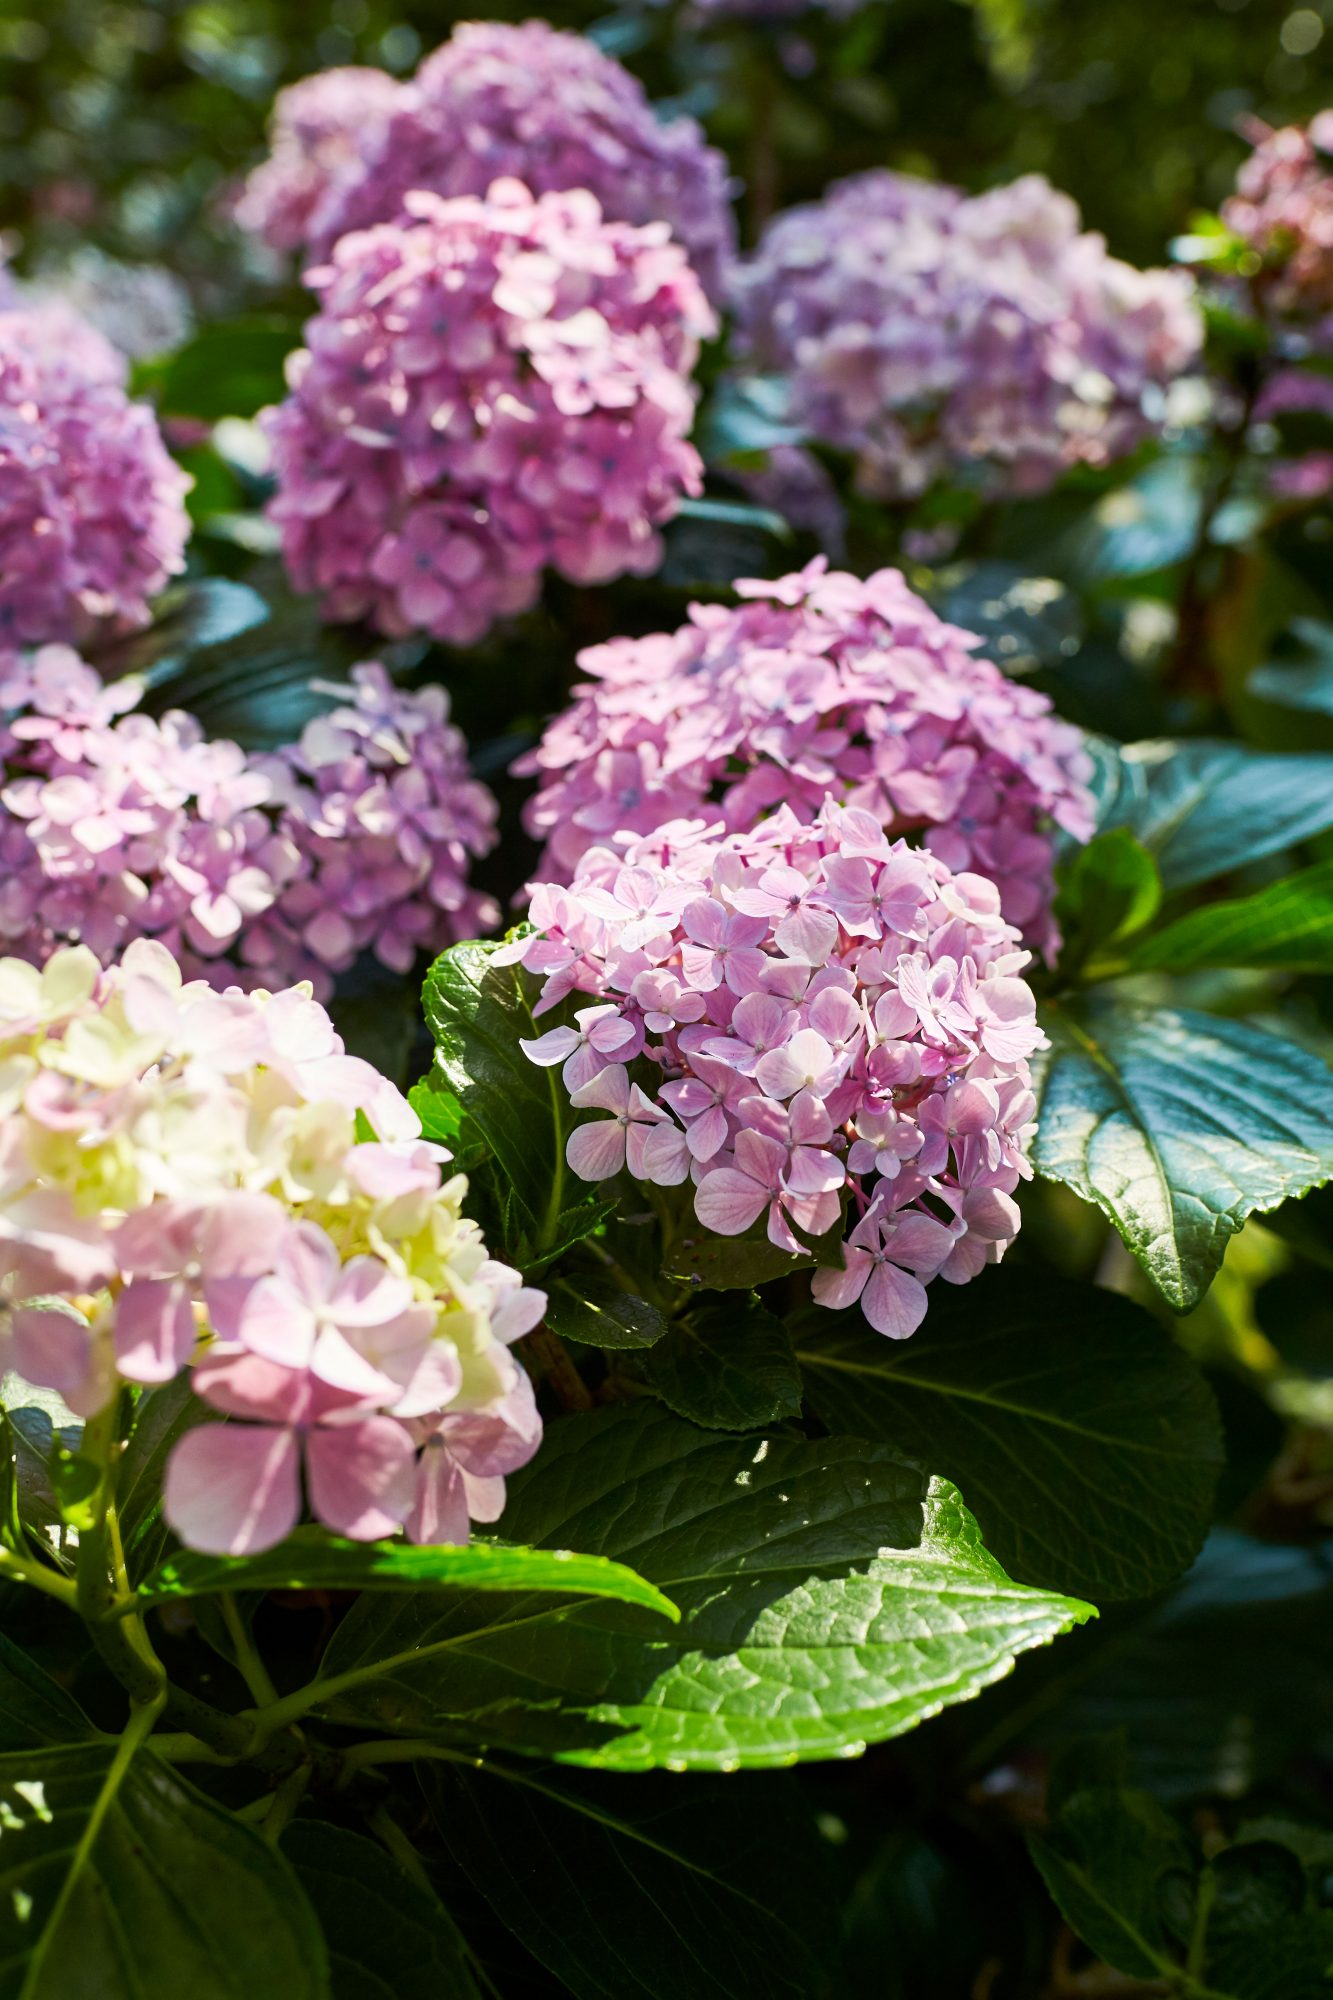 Purple Hydrangea Blooms in Pamela Scurry's Garden